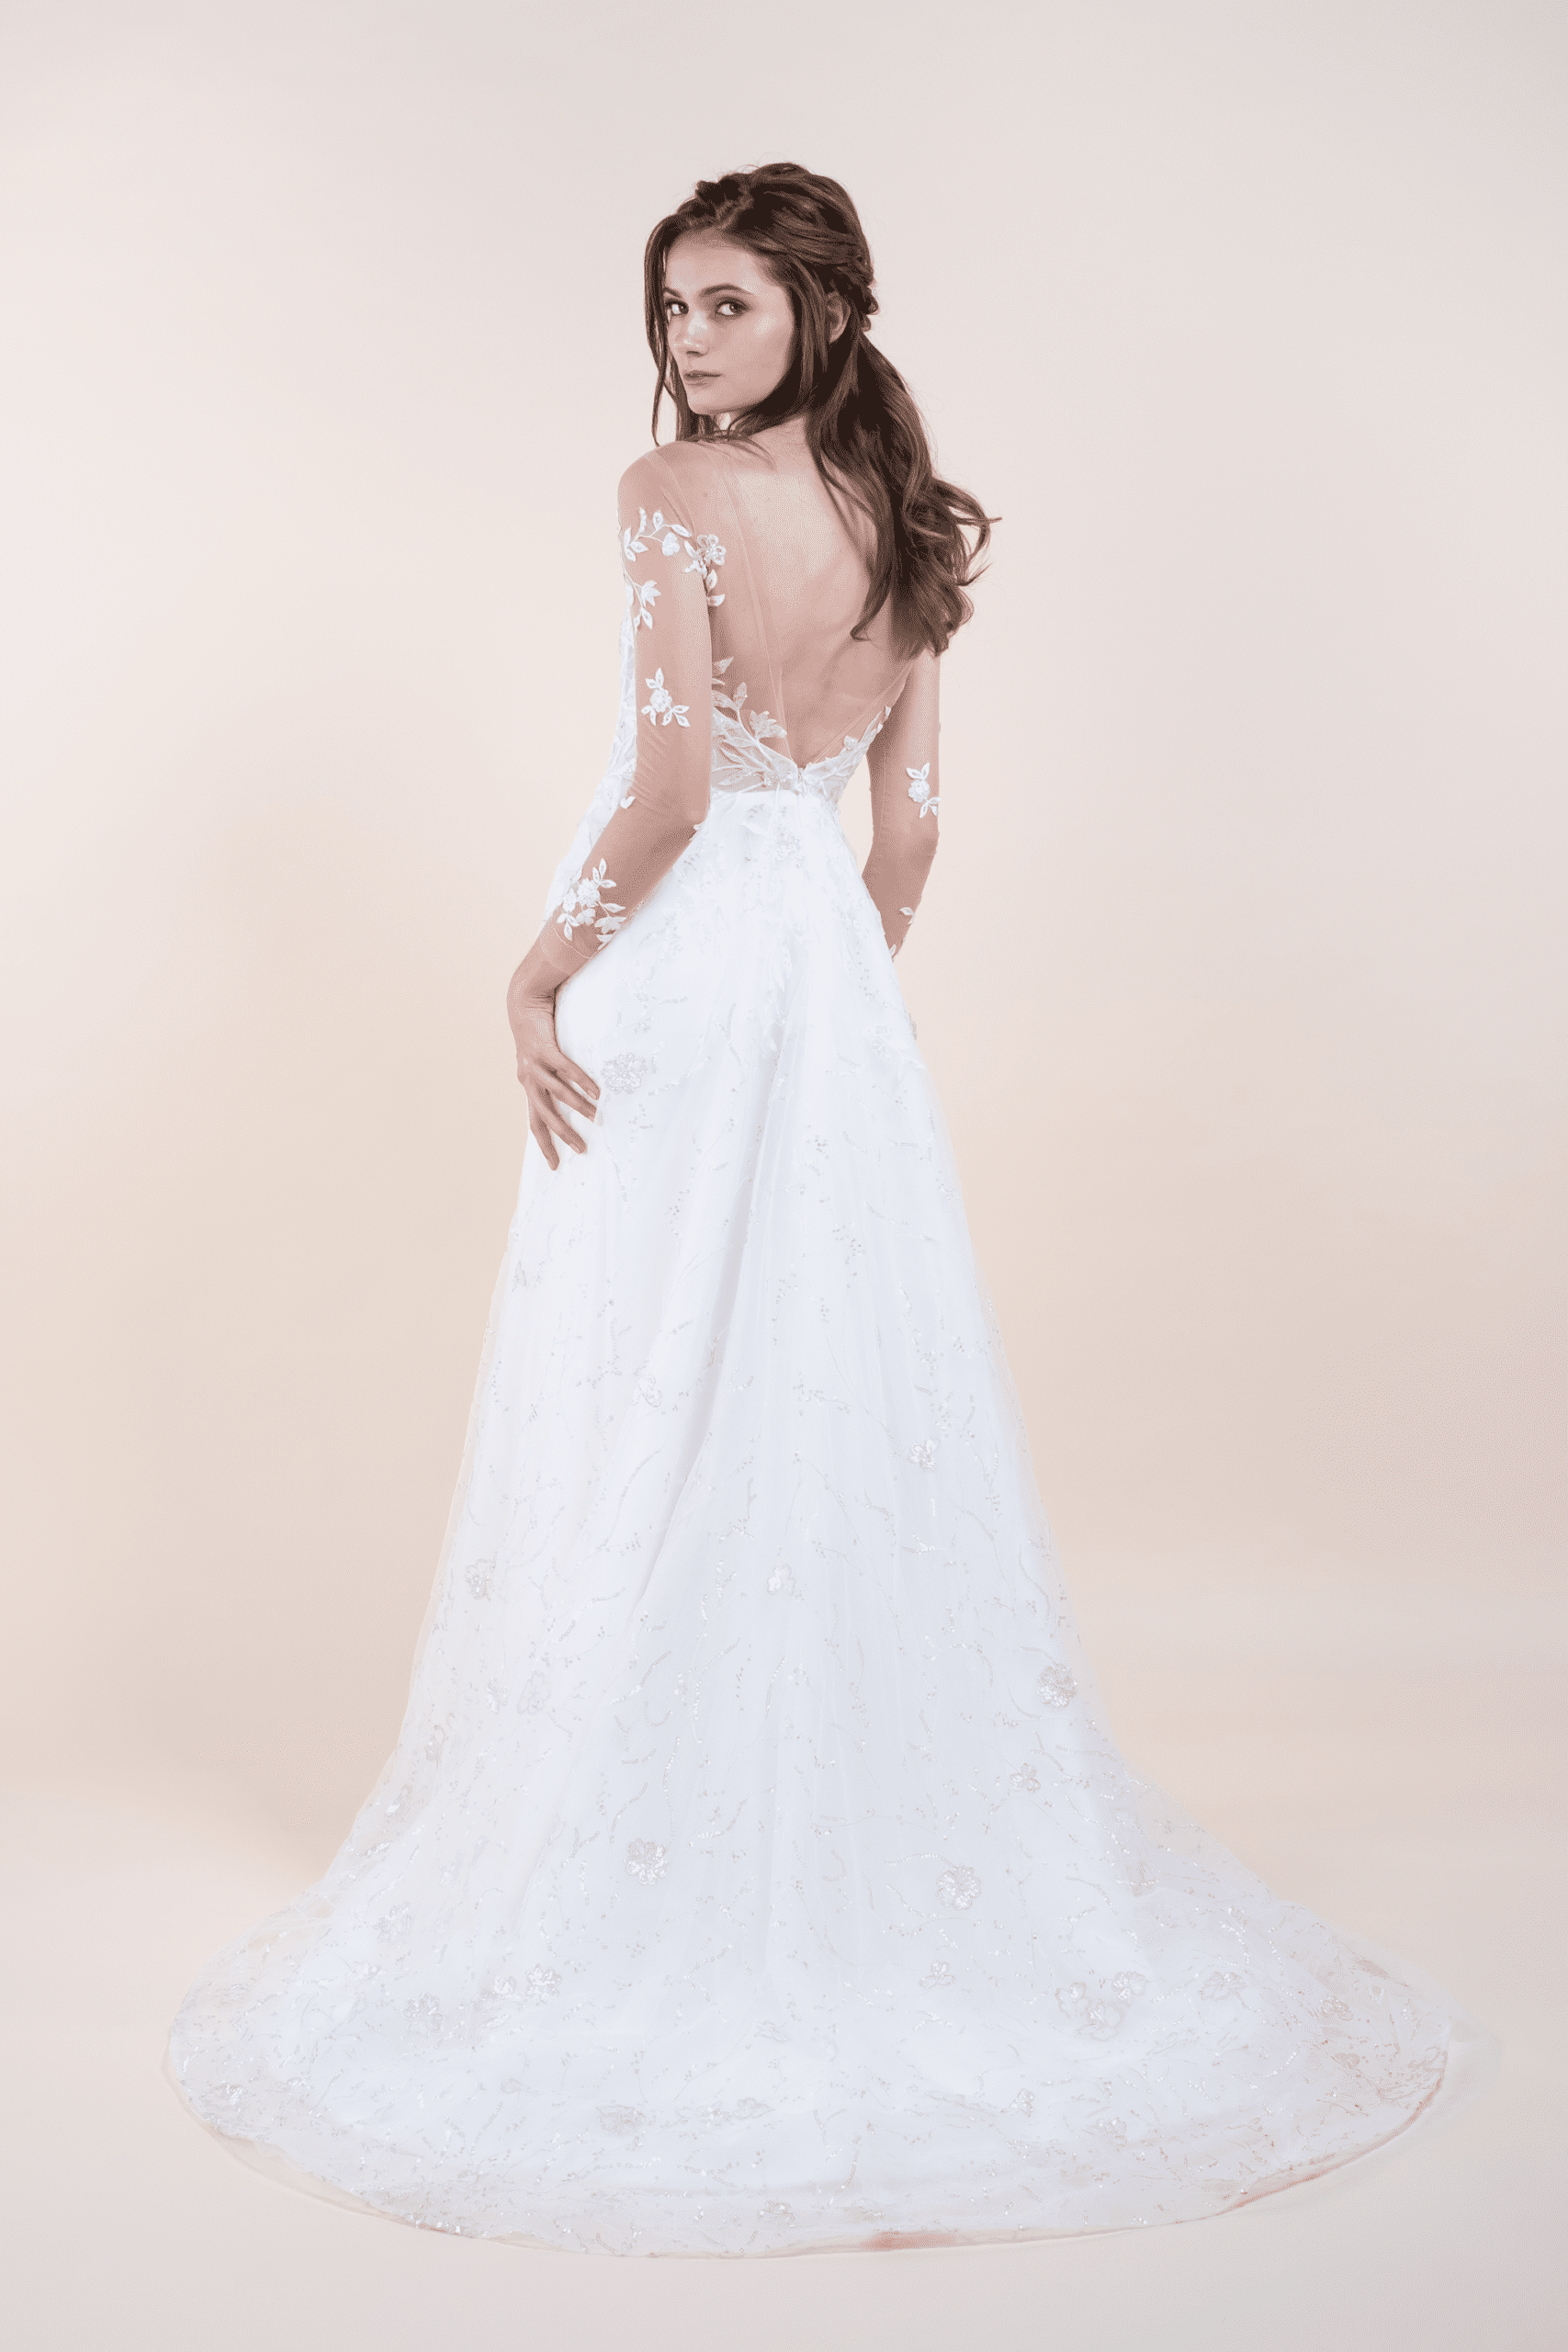 Riane-affordable-Bridal-Dress-for-rent-in-Singapore